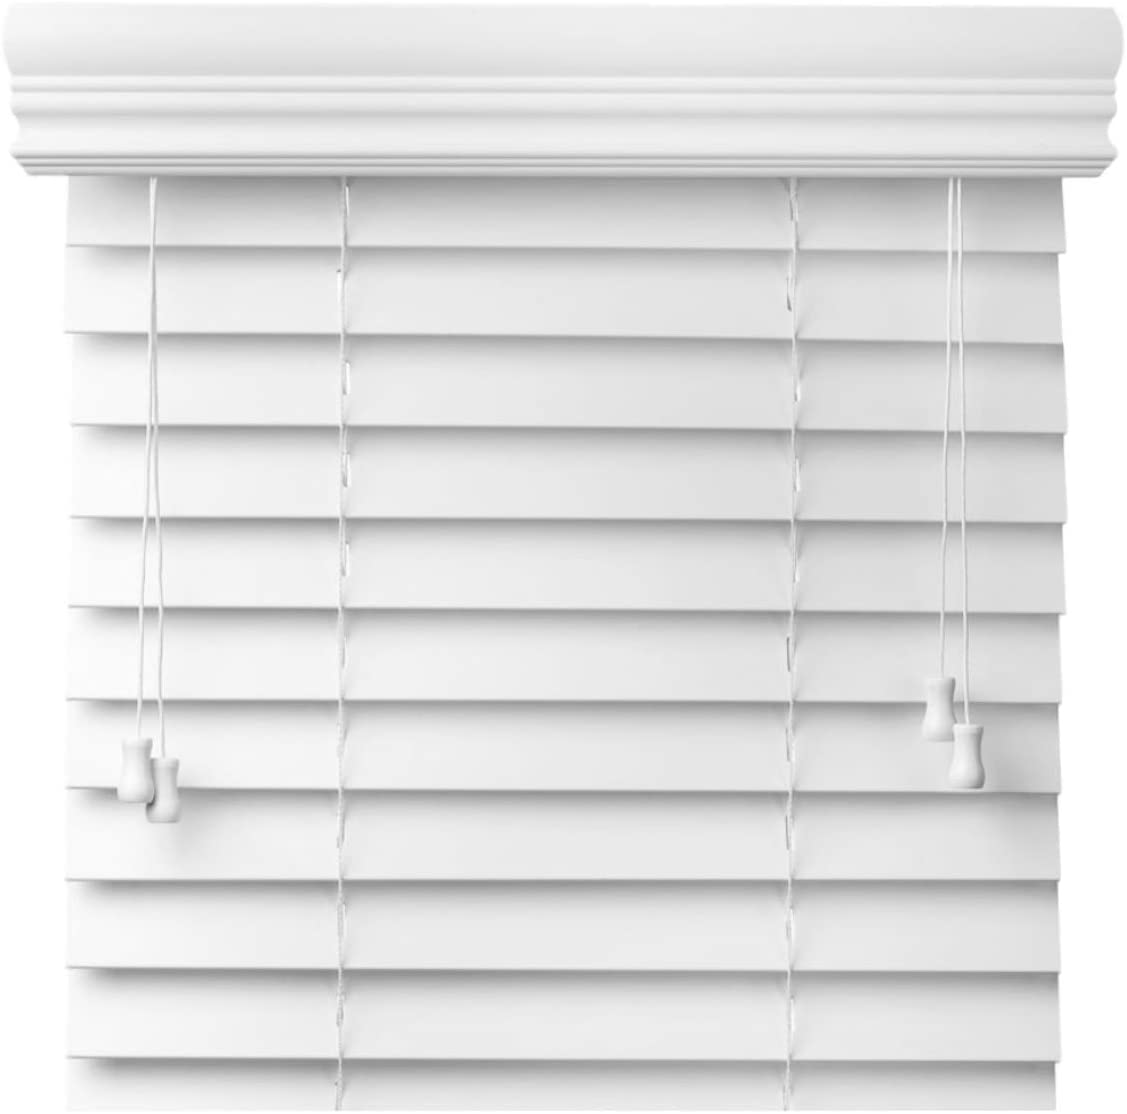 spotblinds Custom Made 2 Faux Wood Blinds – Choose Your Width and Length Range Then Customize Your Size, Color and Mount for a Perfect Match 45 Thru 47 7 8 , 60 Thru 71 7 8